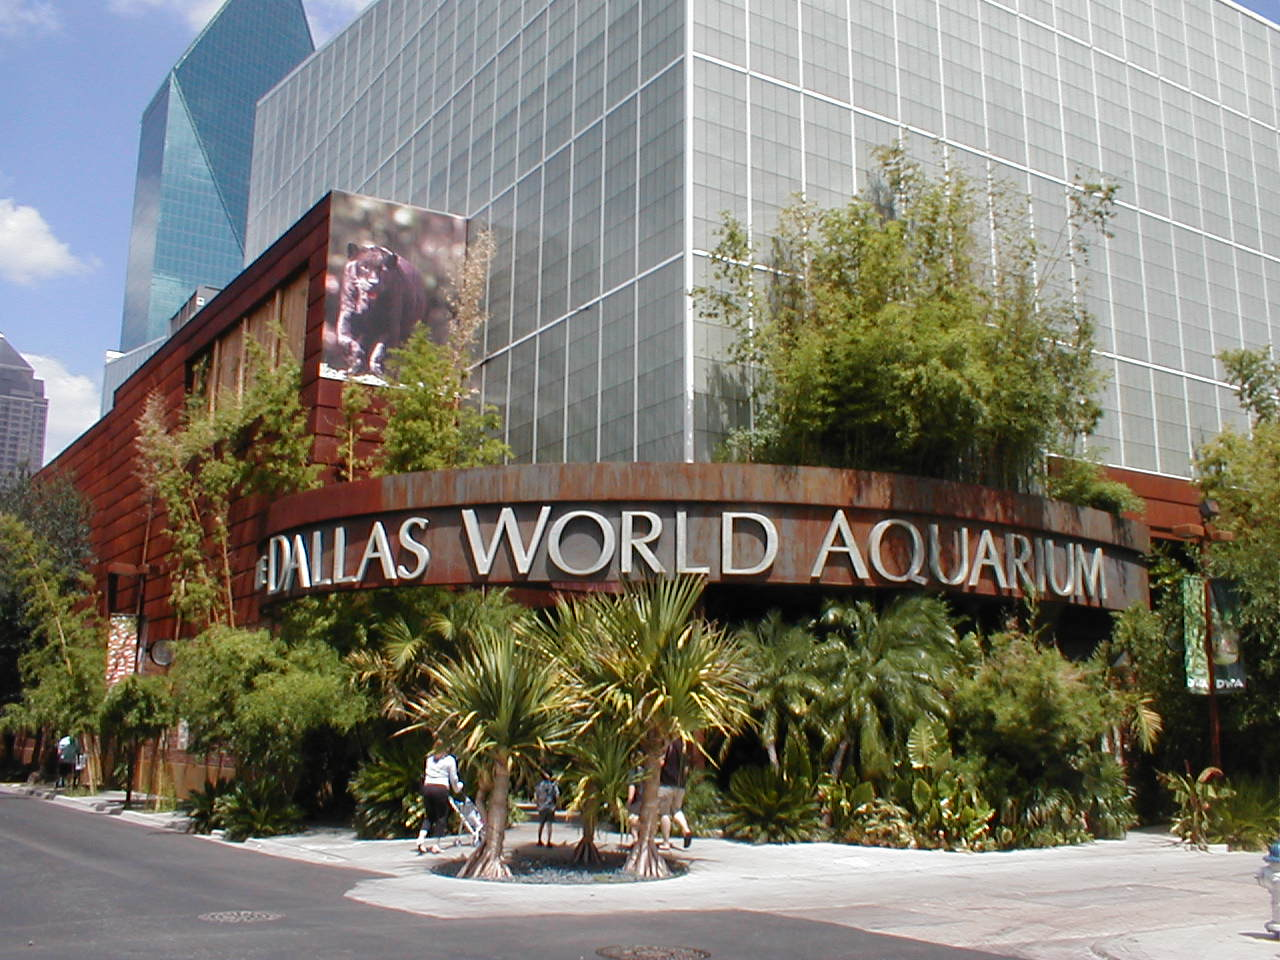 Best Place to Vacation in Texas-Dallas, Dallas World Aquarium